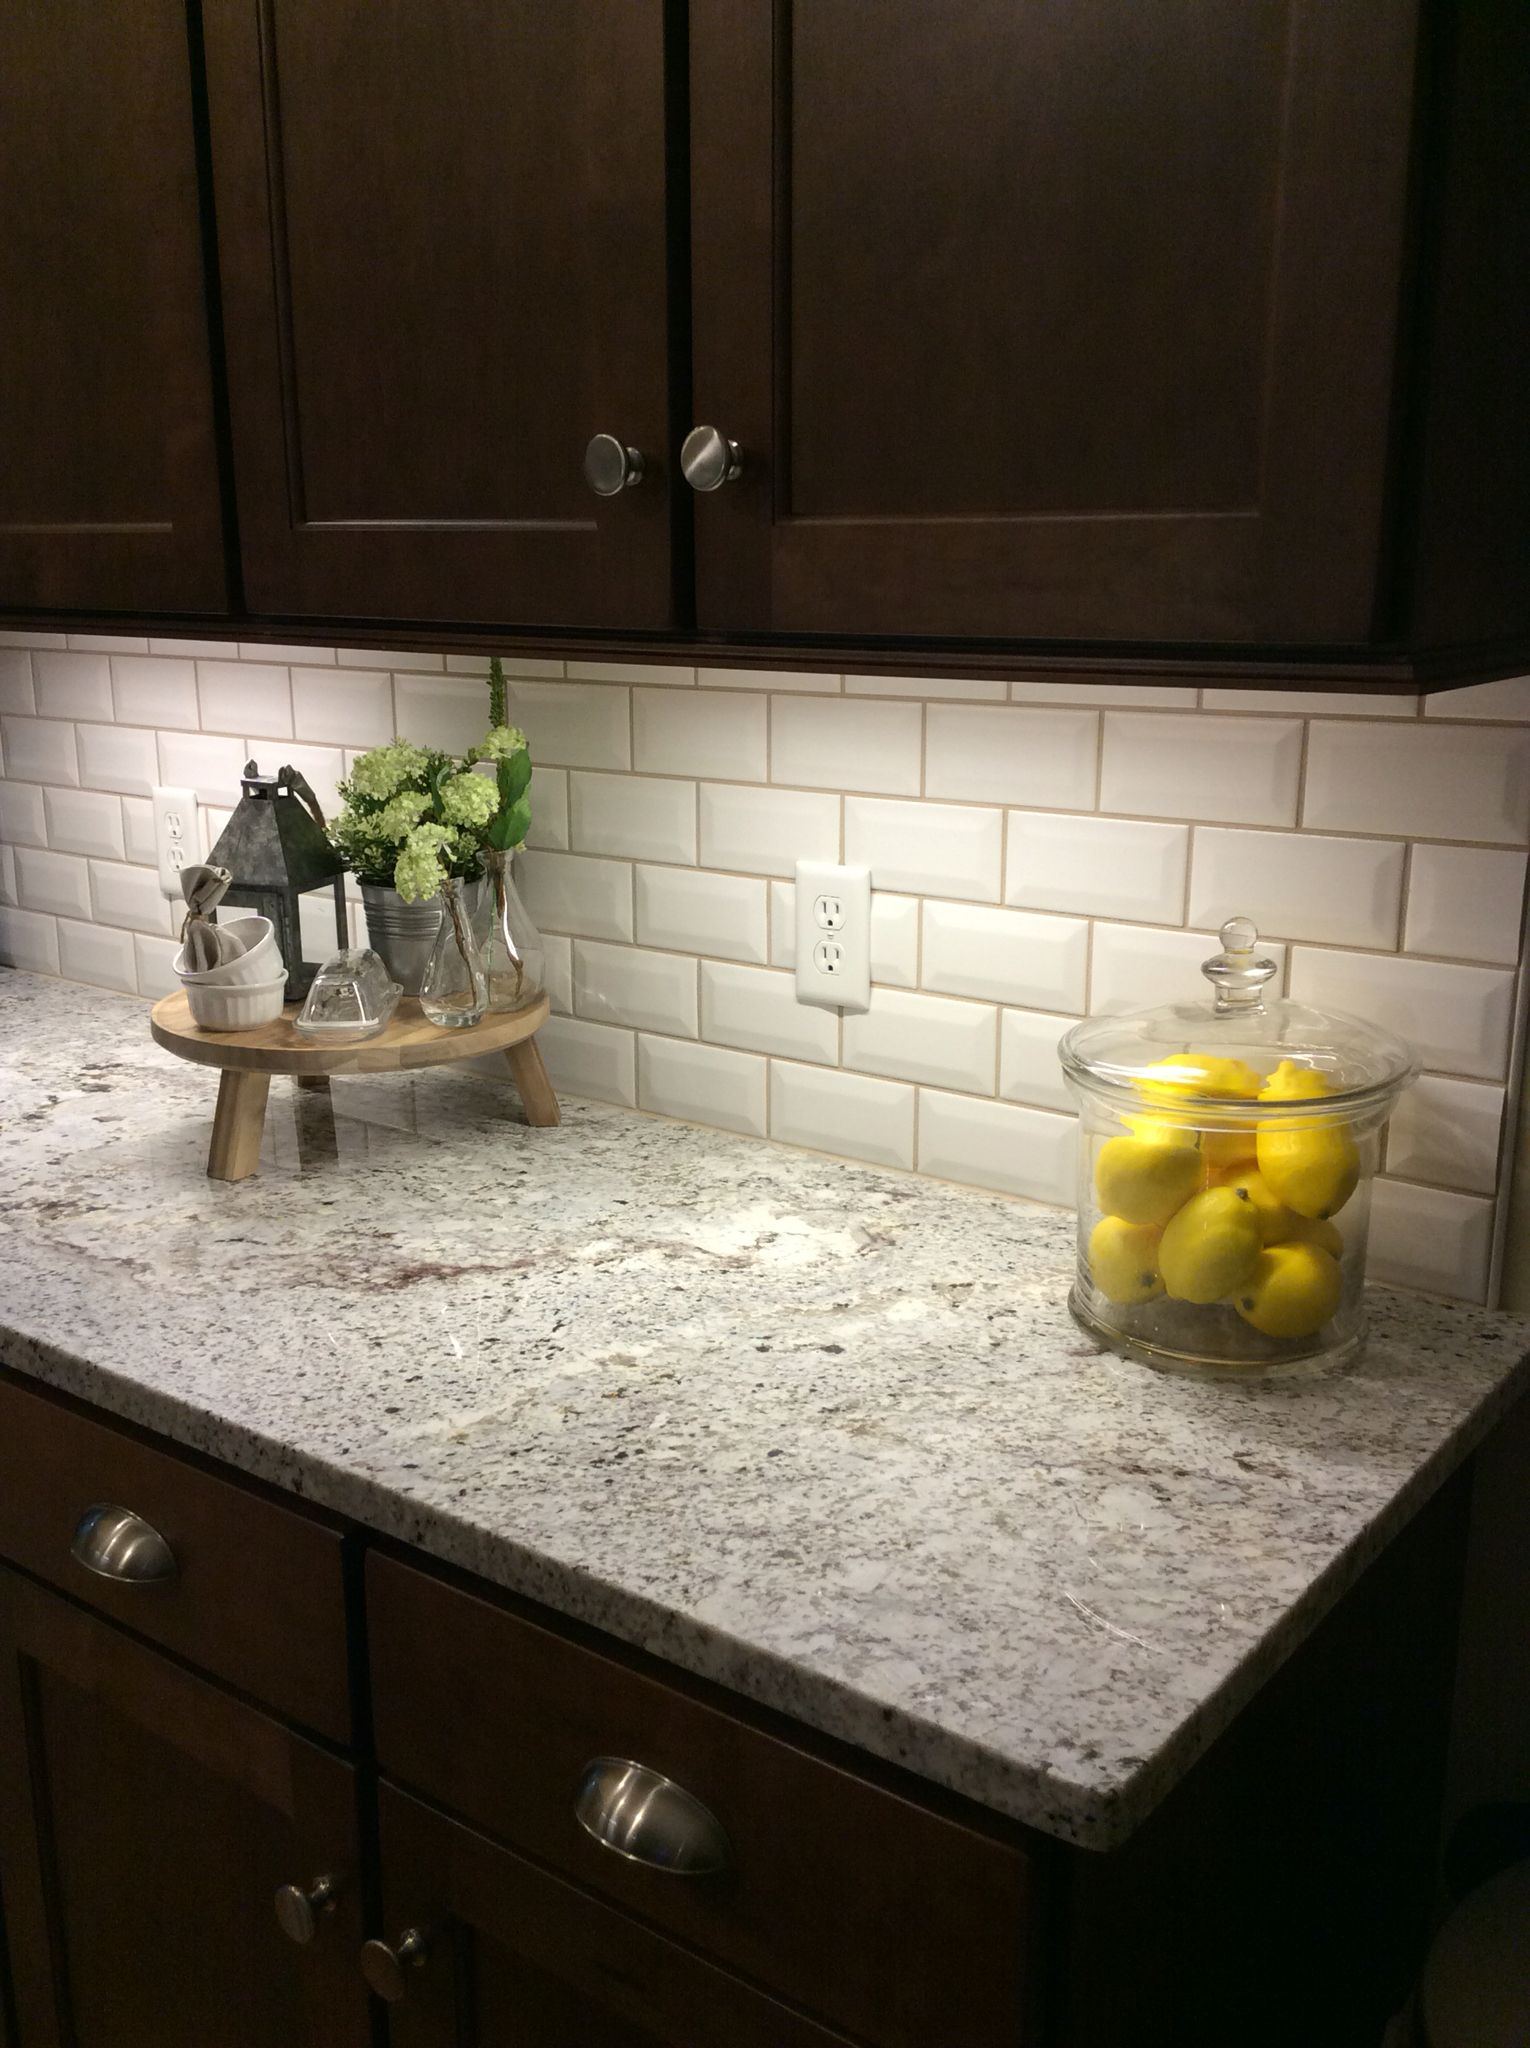 Kitchen Cabinet Espresso Color Espresso Cabinets Moonlight Granite White Subway Tile Antique